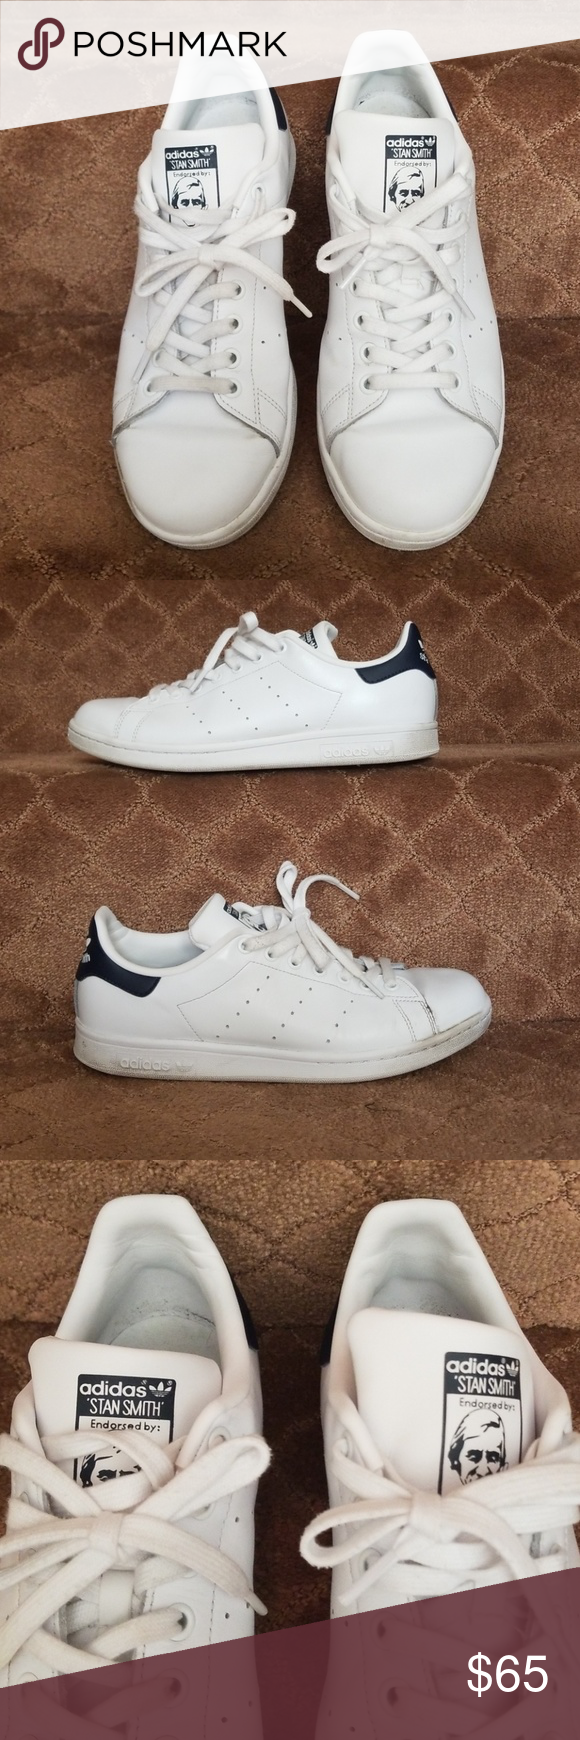 a3770f7e5134f8 👟MENS ADIDAS STAN SMITH SNEAKERS 👟 MEN S WHITE ADIDAS STAN SMITH SNEAKERS!  SIZE US 9 FROM MY HUBBY S CLOSET AND HE TAKES GREAT CARE OF HIS SHOES!